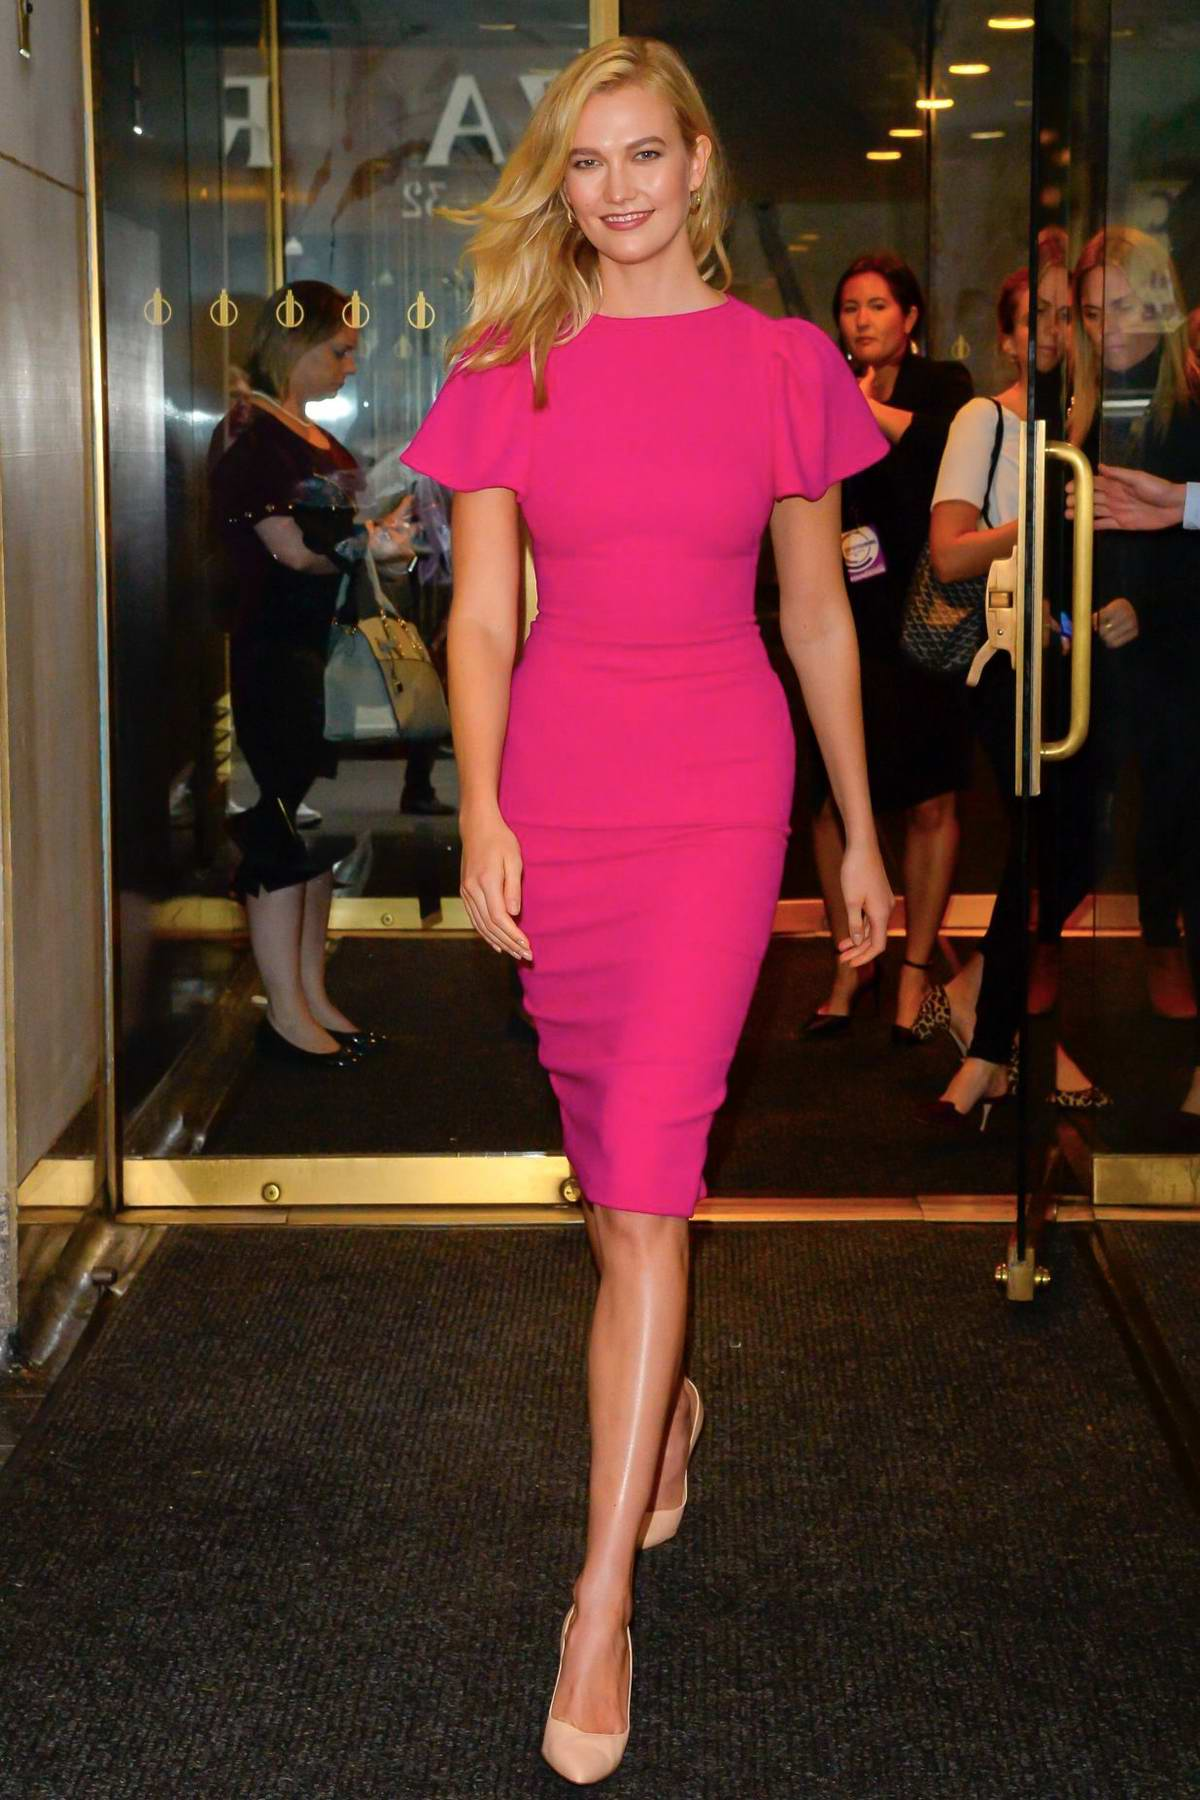 Karlie Kloss attends NBC's 'Today' Celebrates The International Day Of The Girl in New York City